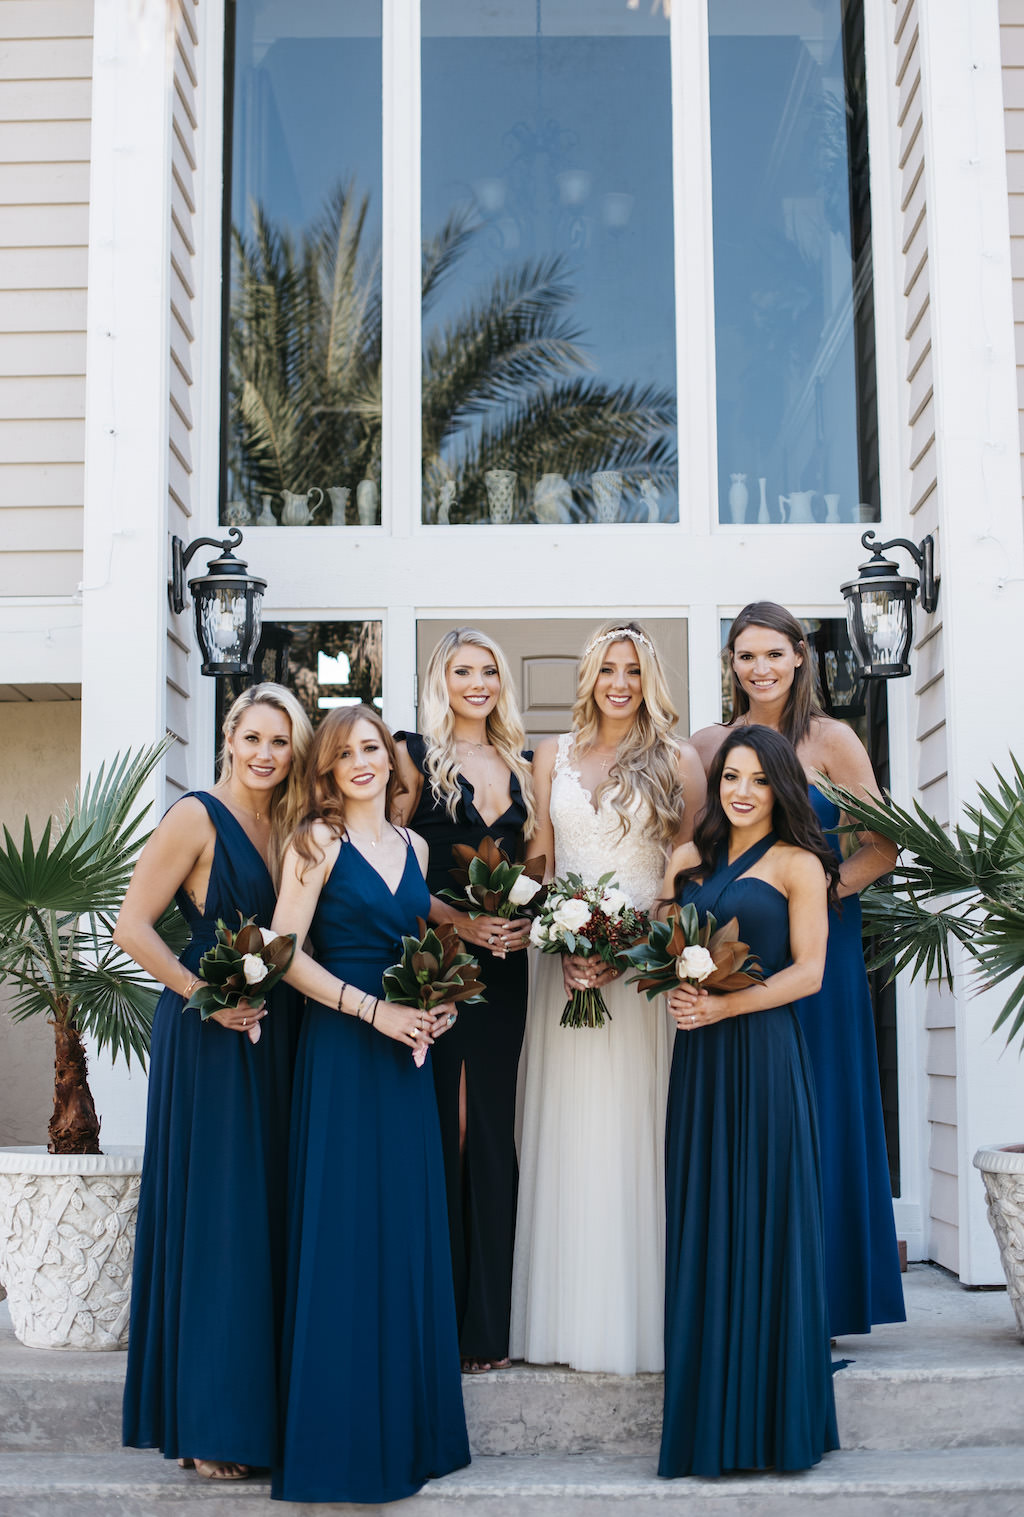 Outdoor Bride and Bridesmaids Wedding Portrait, Bridesmaids in Long Mismatched Style Navy Blue Dresses | Tampa Bay Wedding Planner Kelly Kennedy Weddings and Events